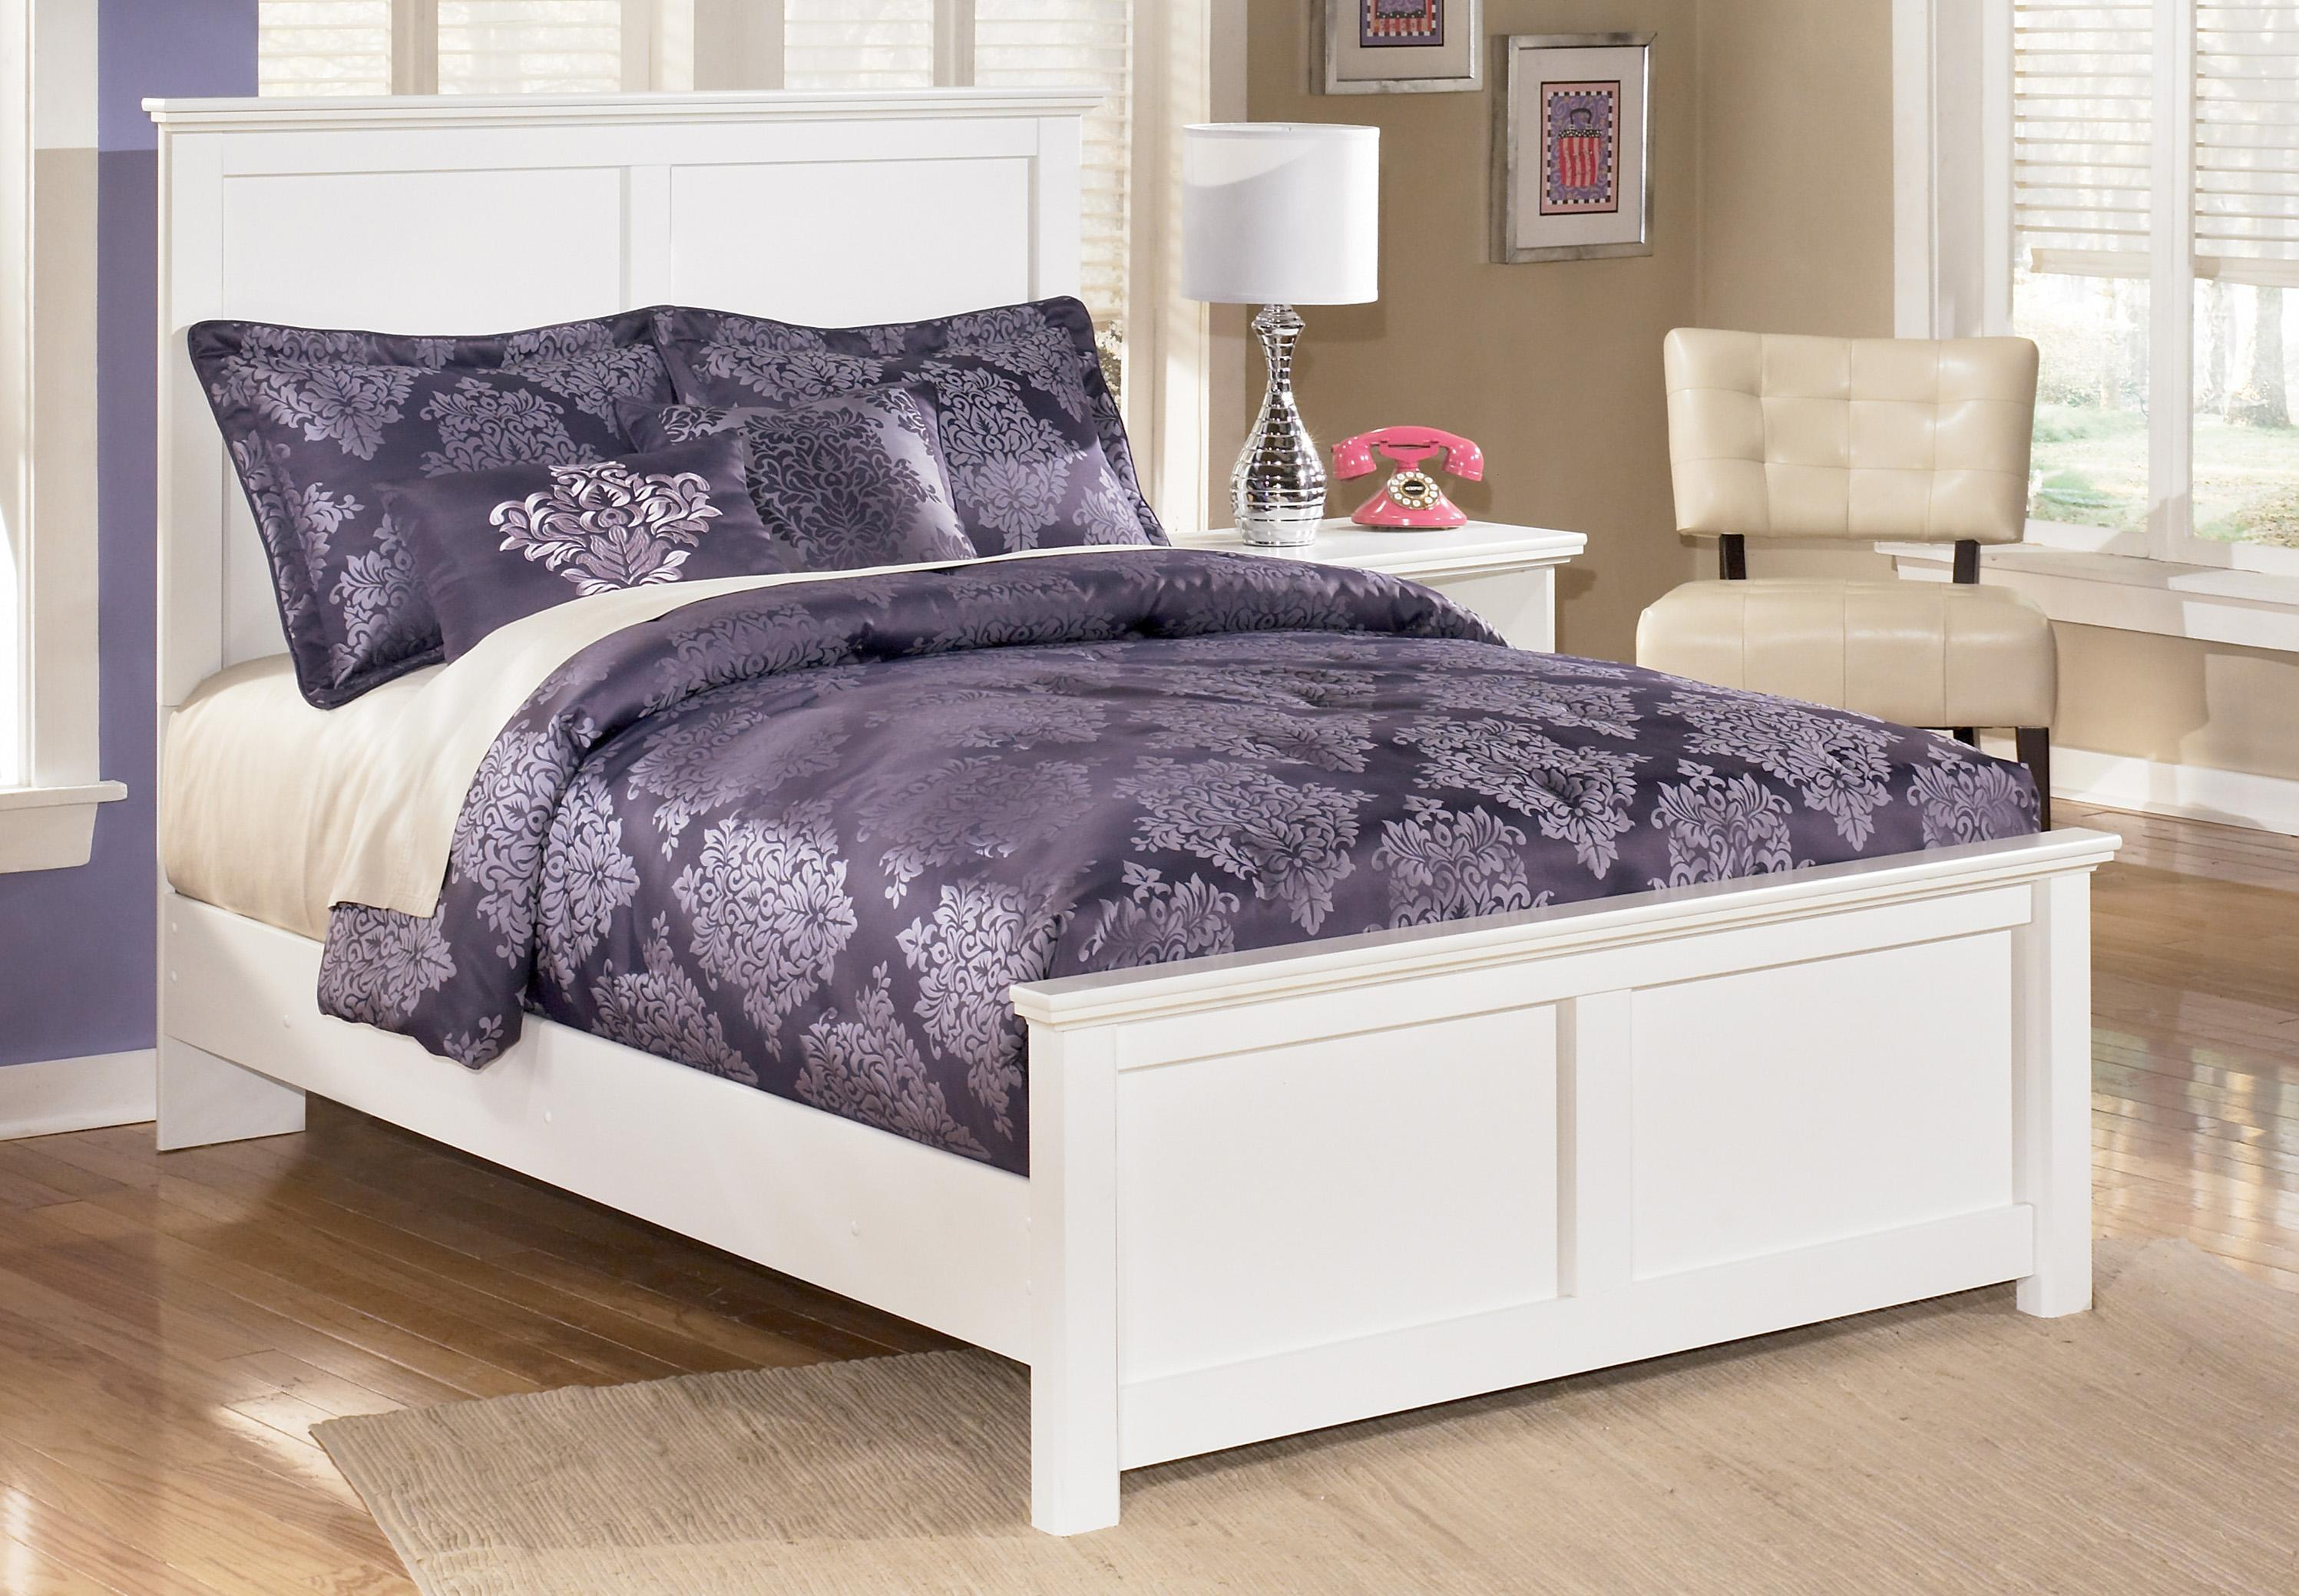 Bostwick Shoals Full Panel Bed by Signature Design by Ashley at Furniture Barn